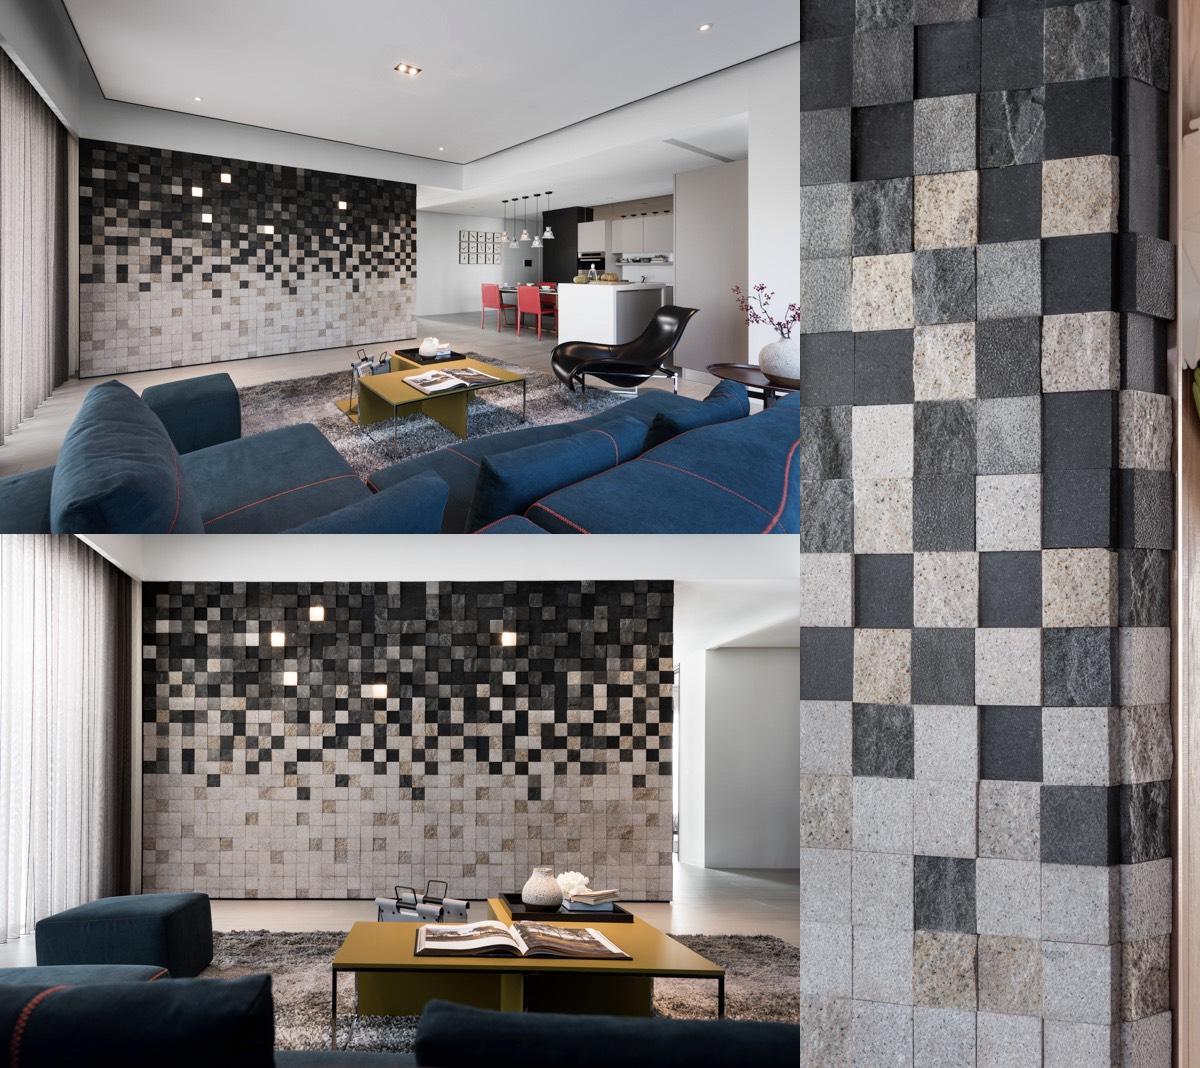 This gorgeous accent wall is a mosaic of highly textural tiles in shades of charcoal, brown, and gray. The tiles are set at varying depths for an even more dynamic effect - a very creative touch that makes the tiles look soft as wool.